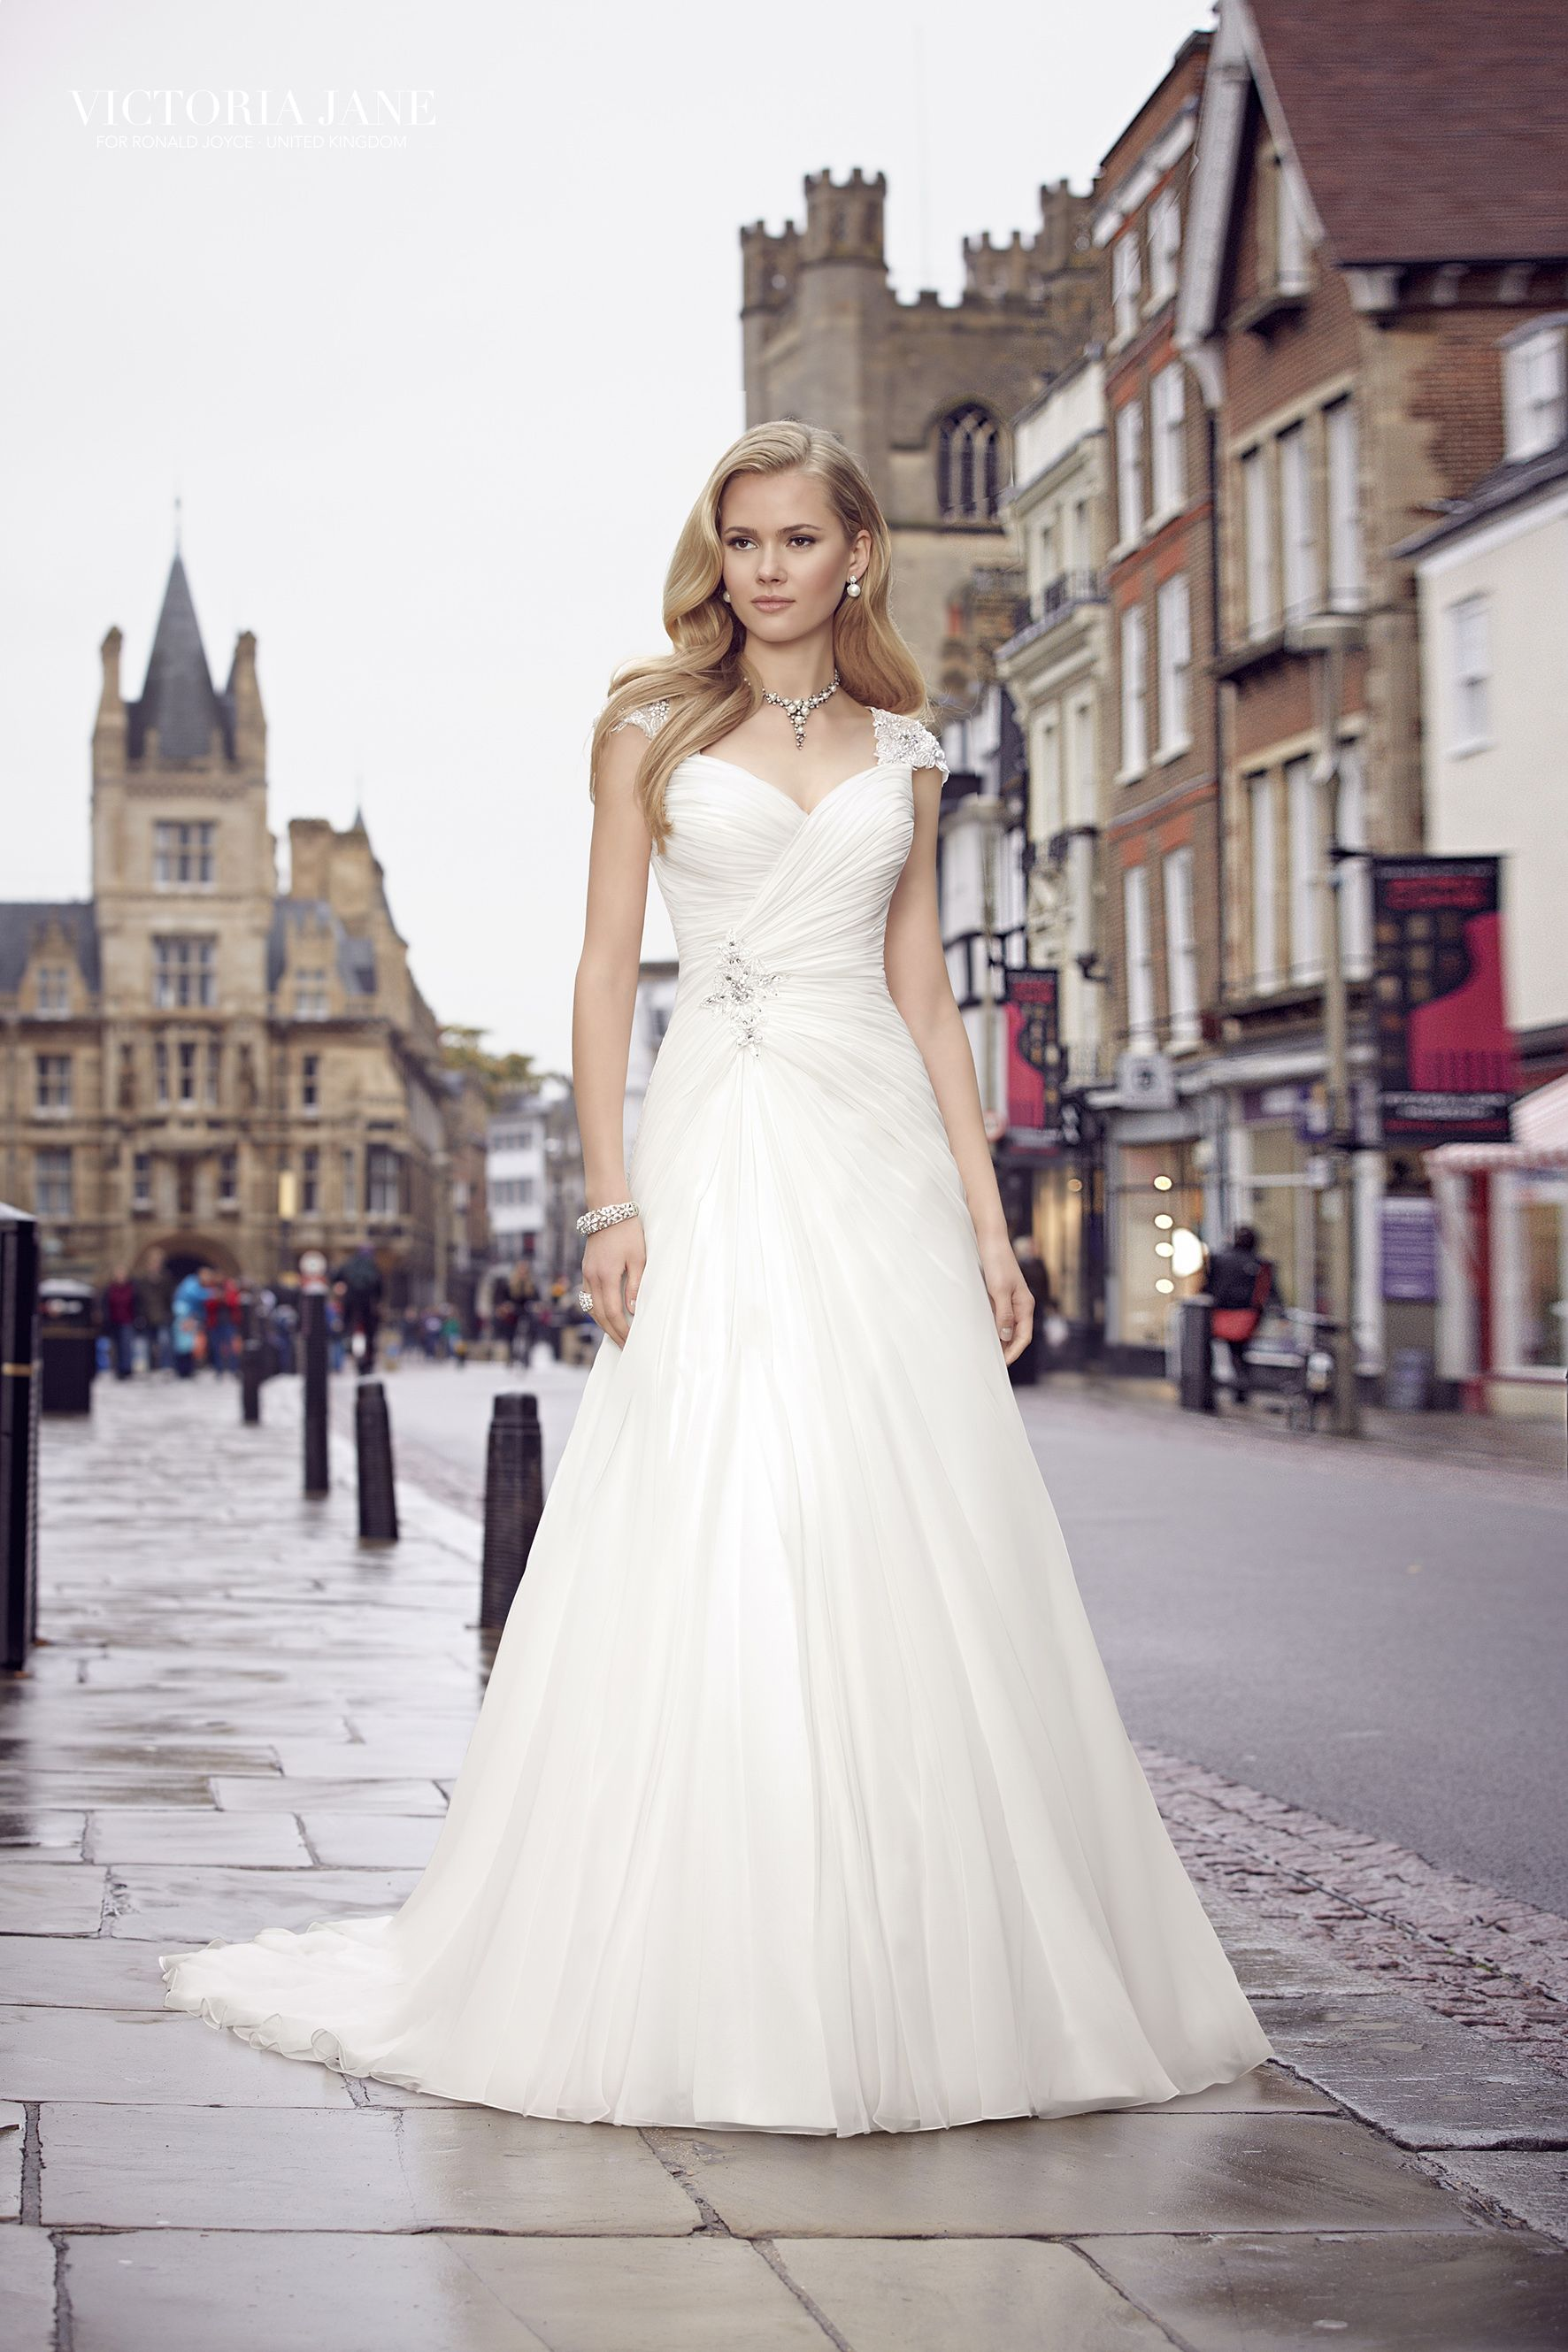 A simple & elegant wedding dress with diamante sleeves